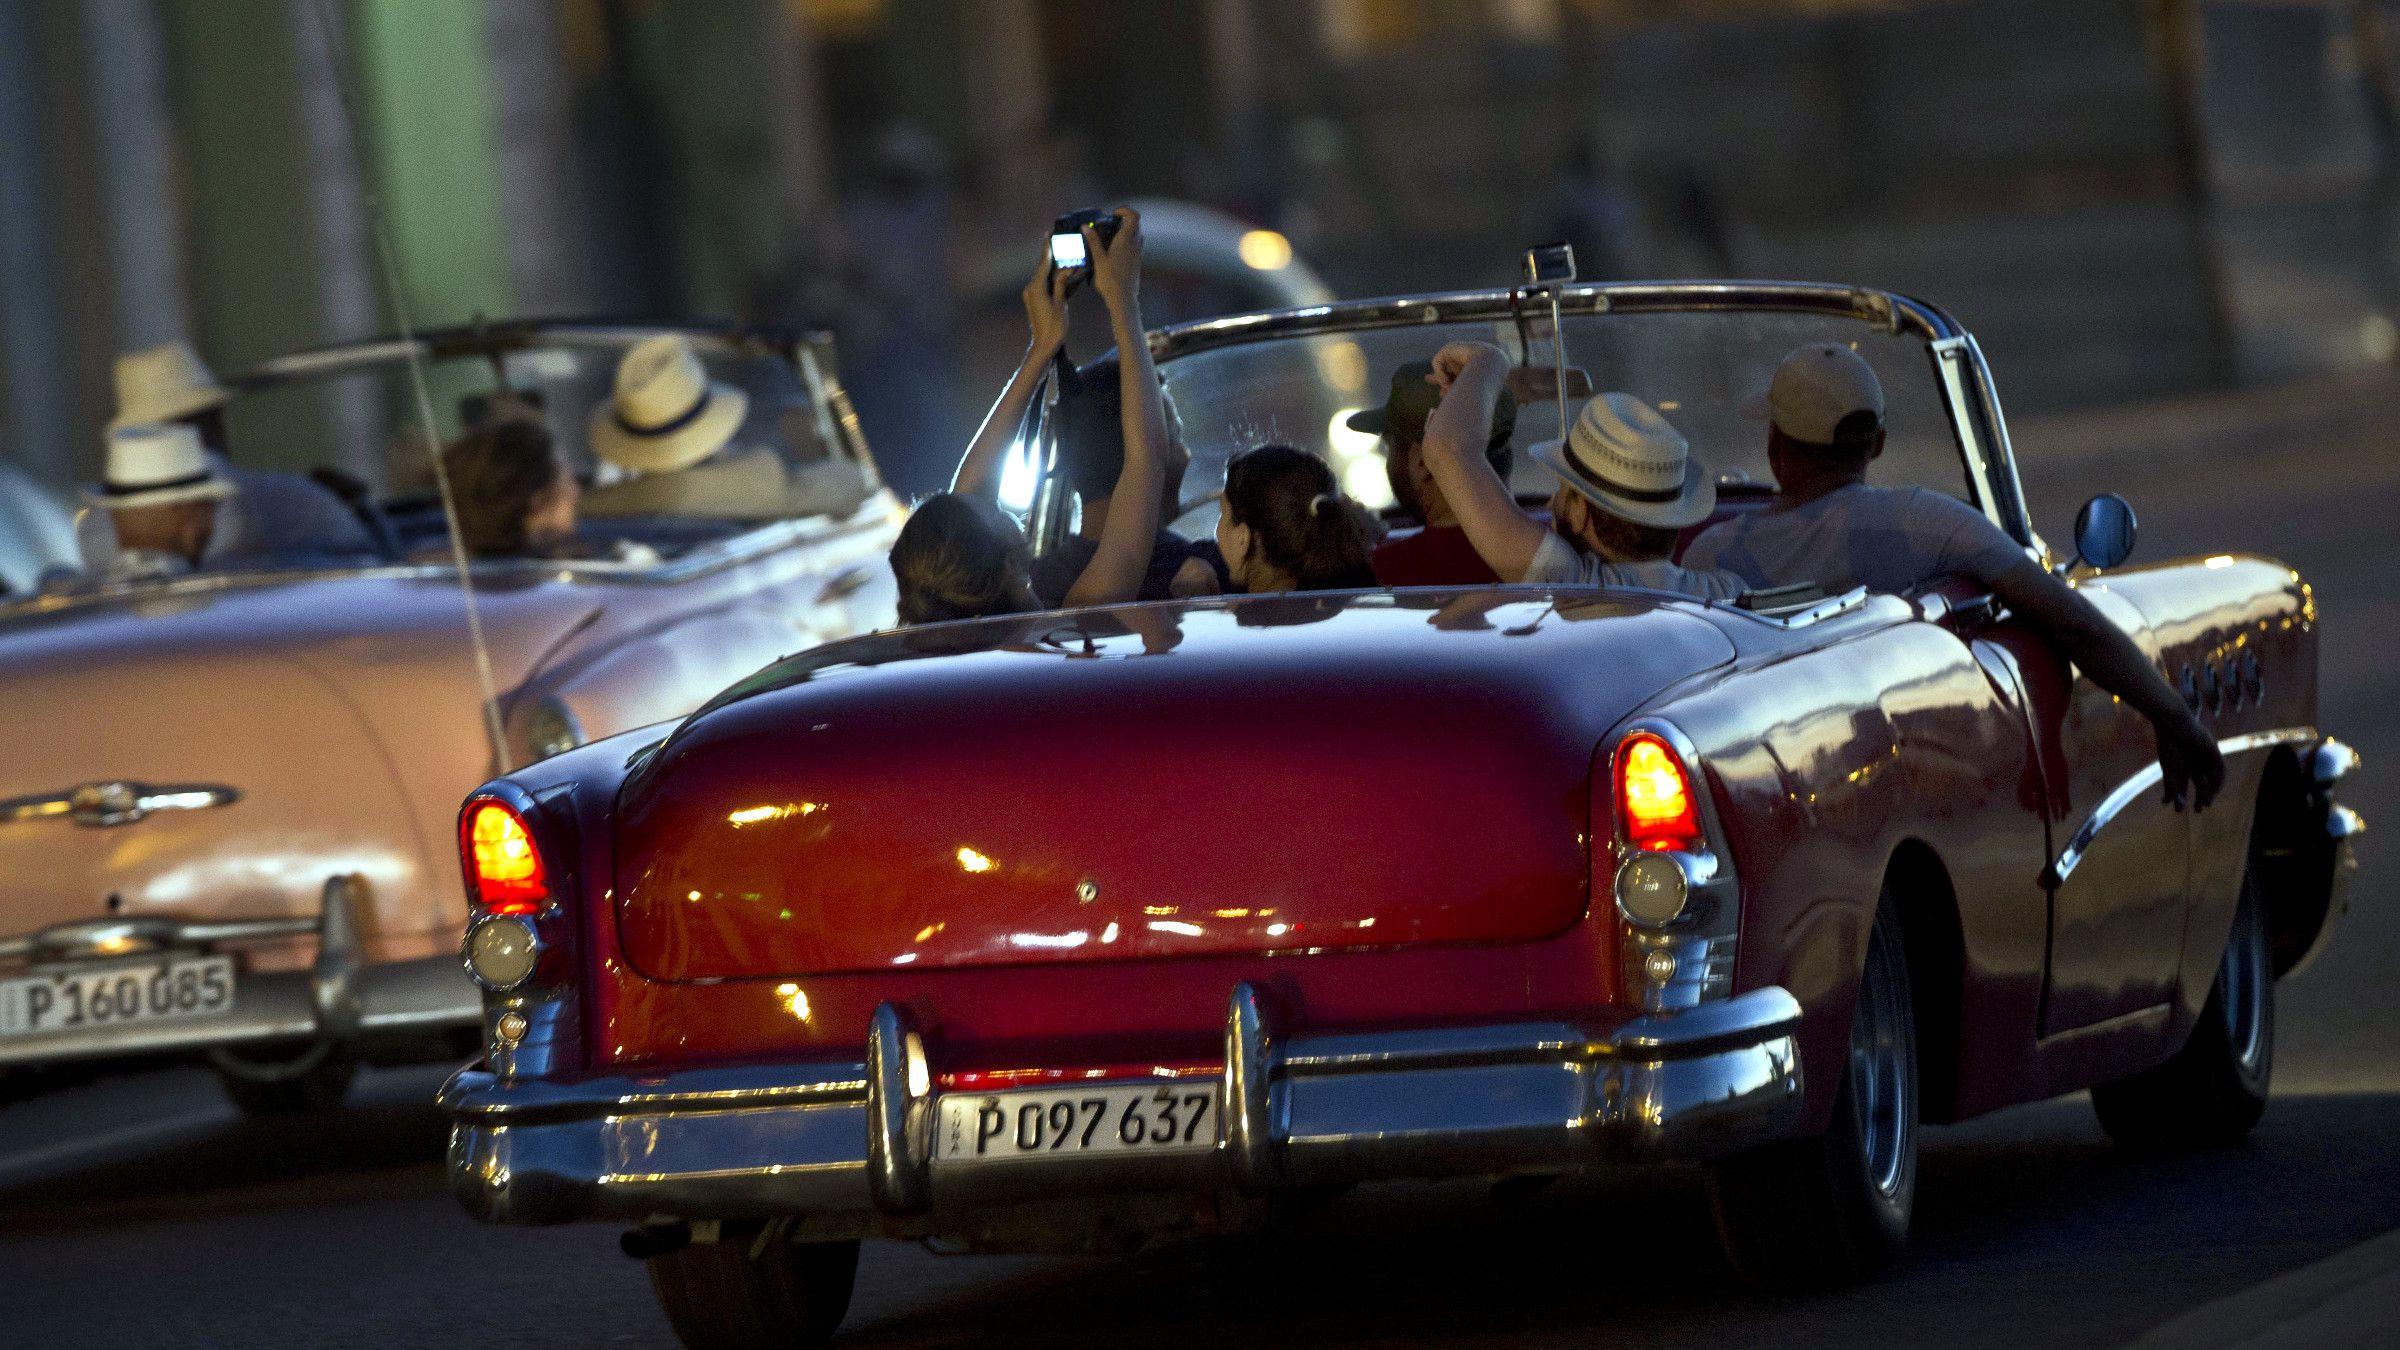 Tourists ride in vintage American convertible cars, on the Malecon in Havana, Cuba, Sunday, Dec. 28, 2014. Cuba and the U.S. announced on Dec. 17 that the two countries would resume diplomatic relations for the first time since 1961.